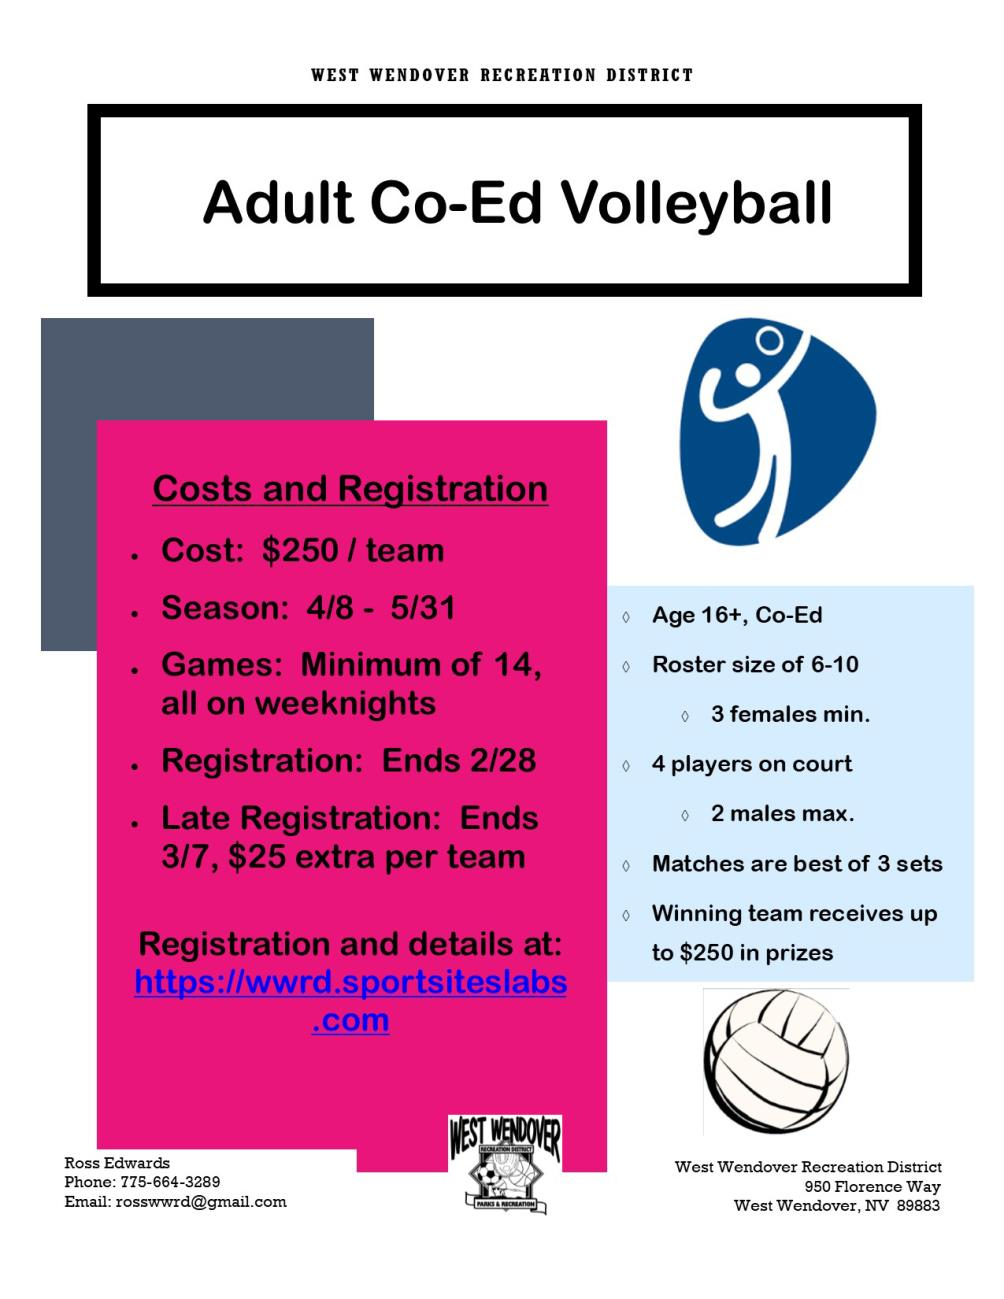 WWRD Adult Co-Ed Volleyball Registration Underway - Ends Feb. 28th